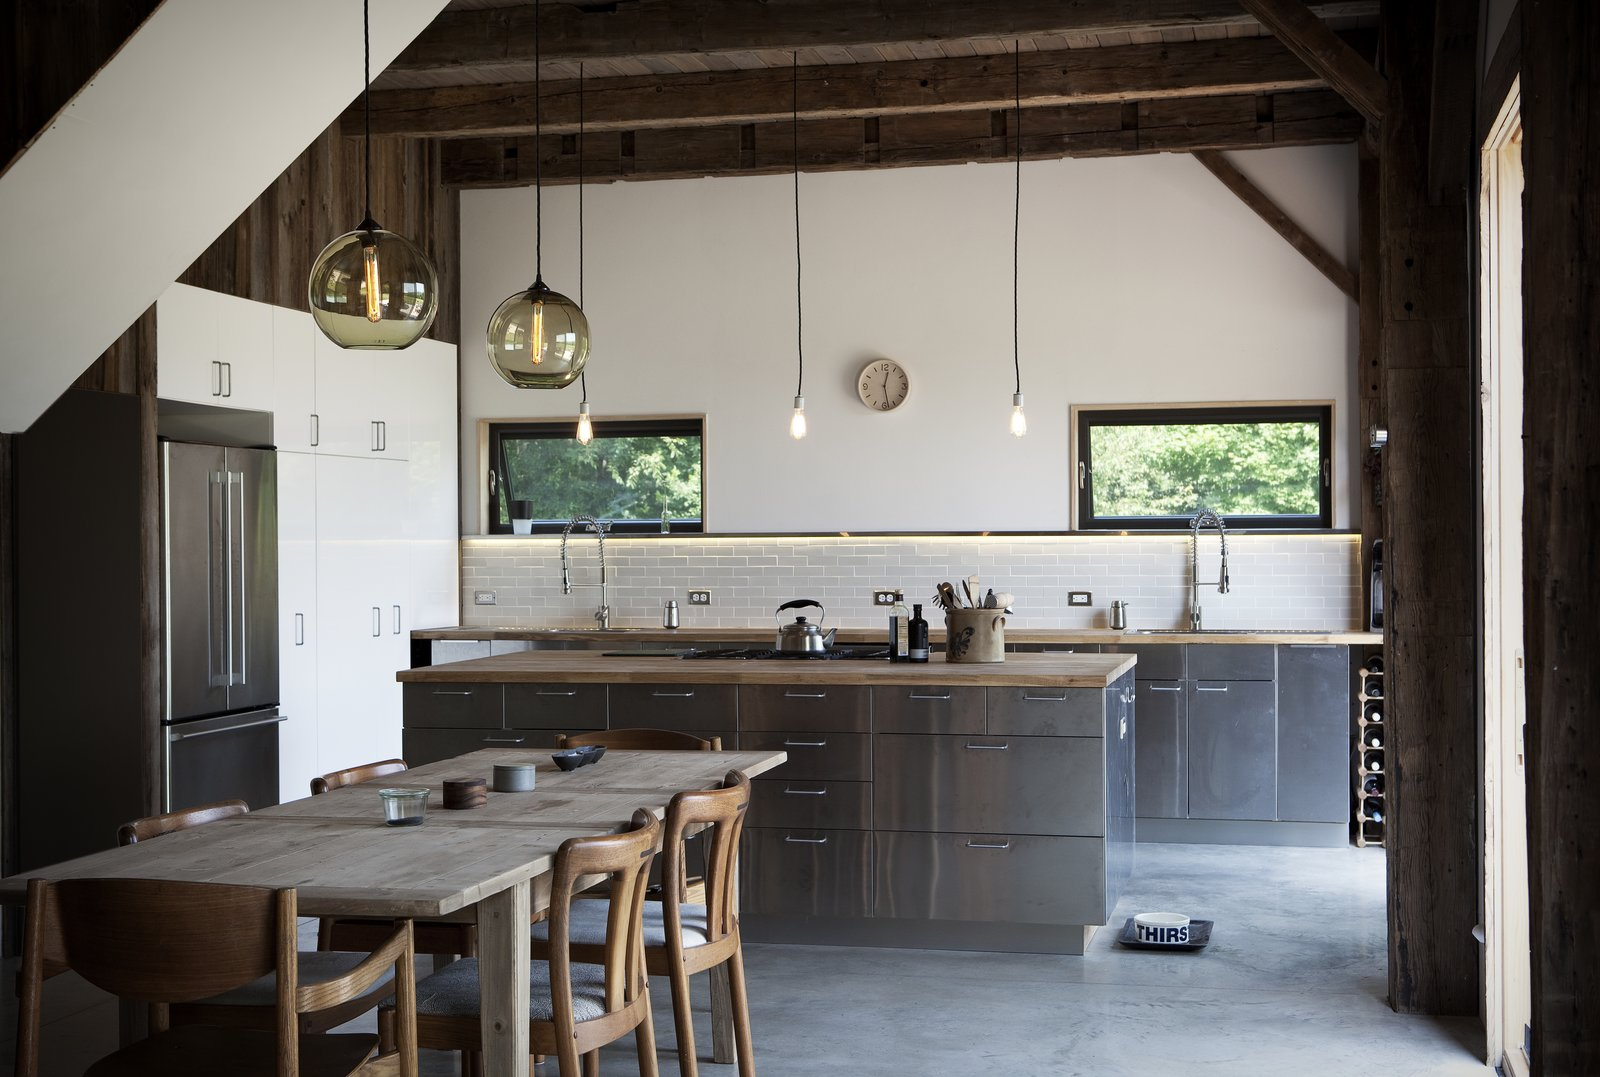 Kitchen, Metal Cabinet, Wood Counter, and Pendant Lighting Originally from Norway, photographer Torkil Stavdal and nutritionist Jeanette Bronée brought a slice of their native Scandinavia to the Catskills when they collaborated with architect Kimberly Peck to design their dream home. In the dining area, Danish modern chairs purchased at Circa Modern are tucked into a wood table from Restoration Hardware. The kitchen cabinets, counters and sink are from IKEA with faucets from Danze.  Photo 15 of 15 in Heavy Metal: 15 Kitchens That Rock Metal Cabinets from A Slice of Scandinavian Design in the Catskills